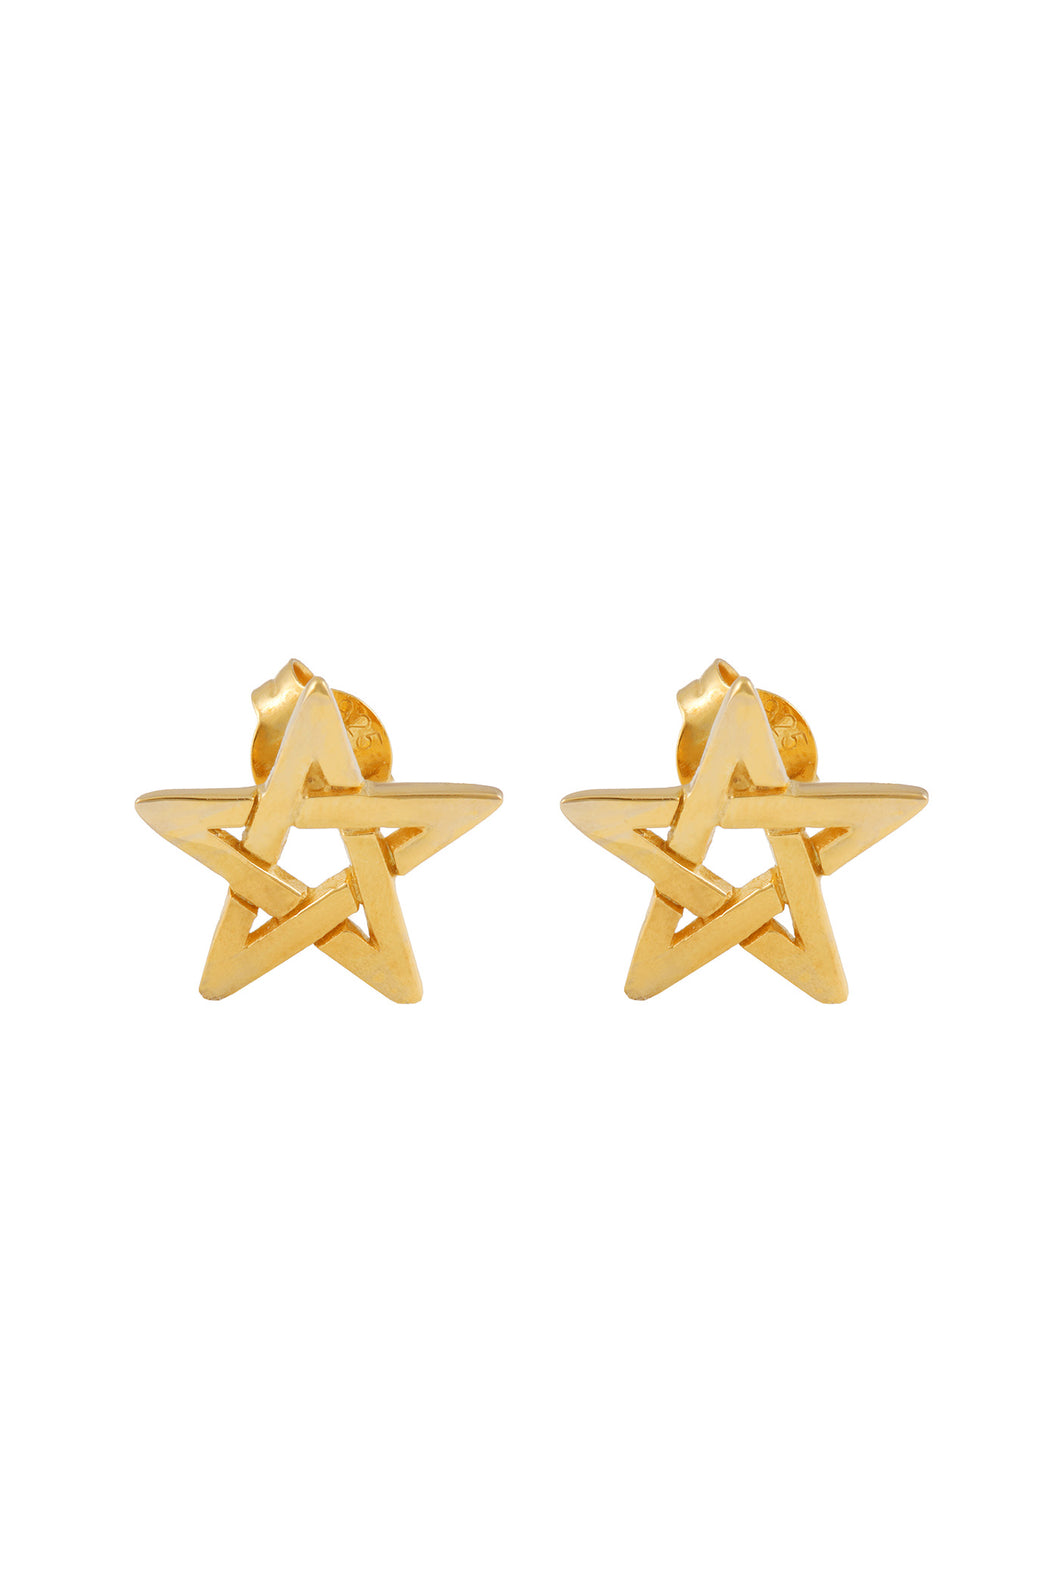 Pentagram studs. Silver, gold plated.